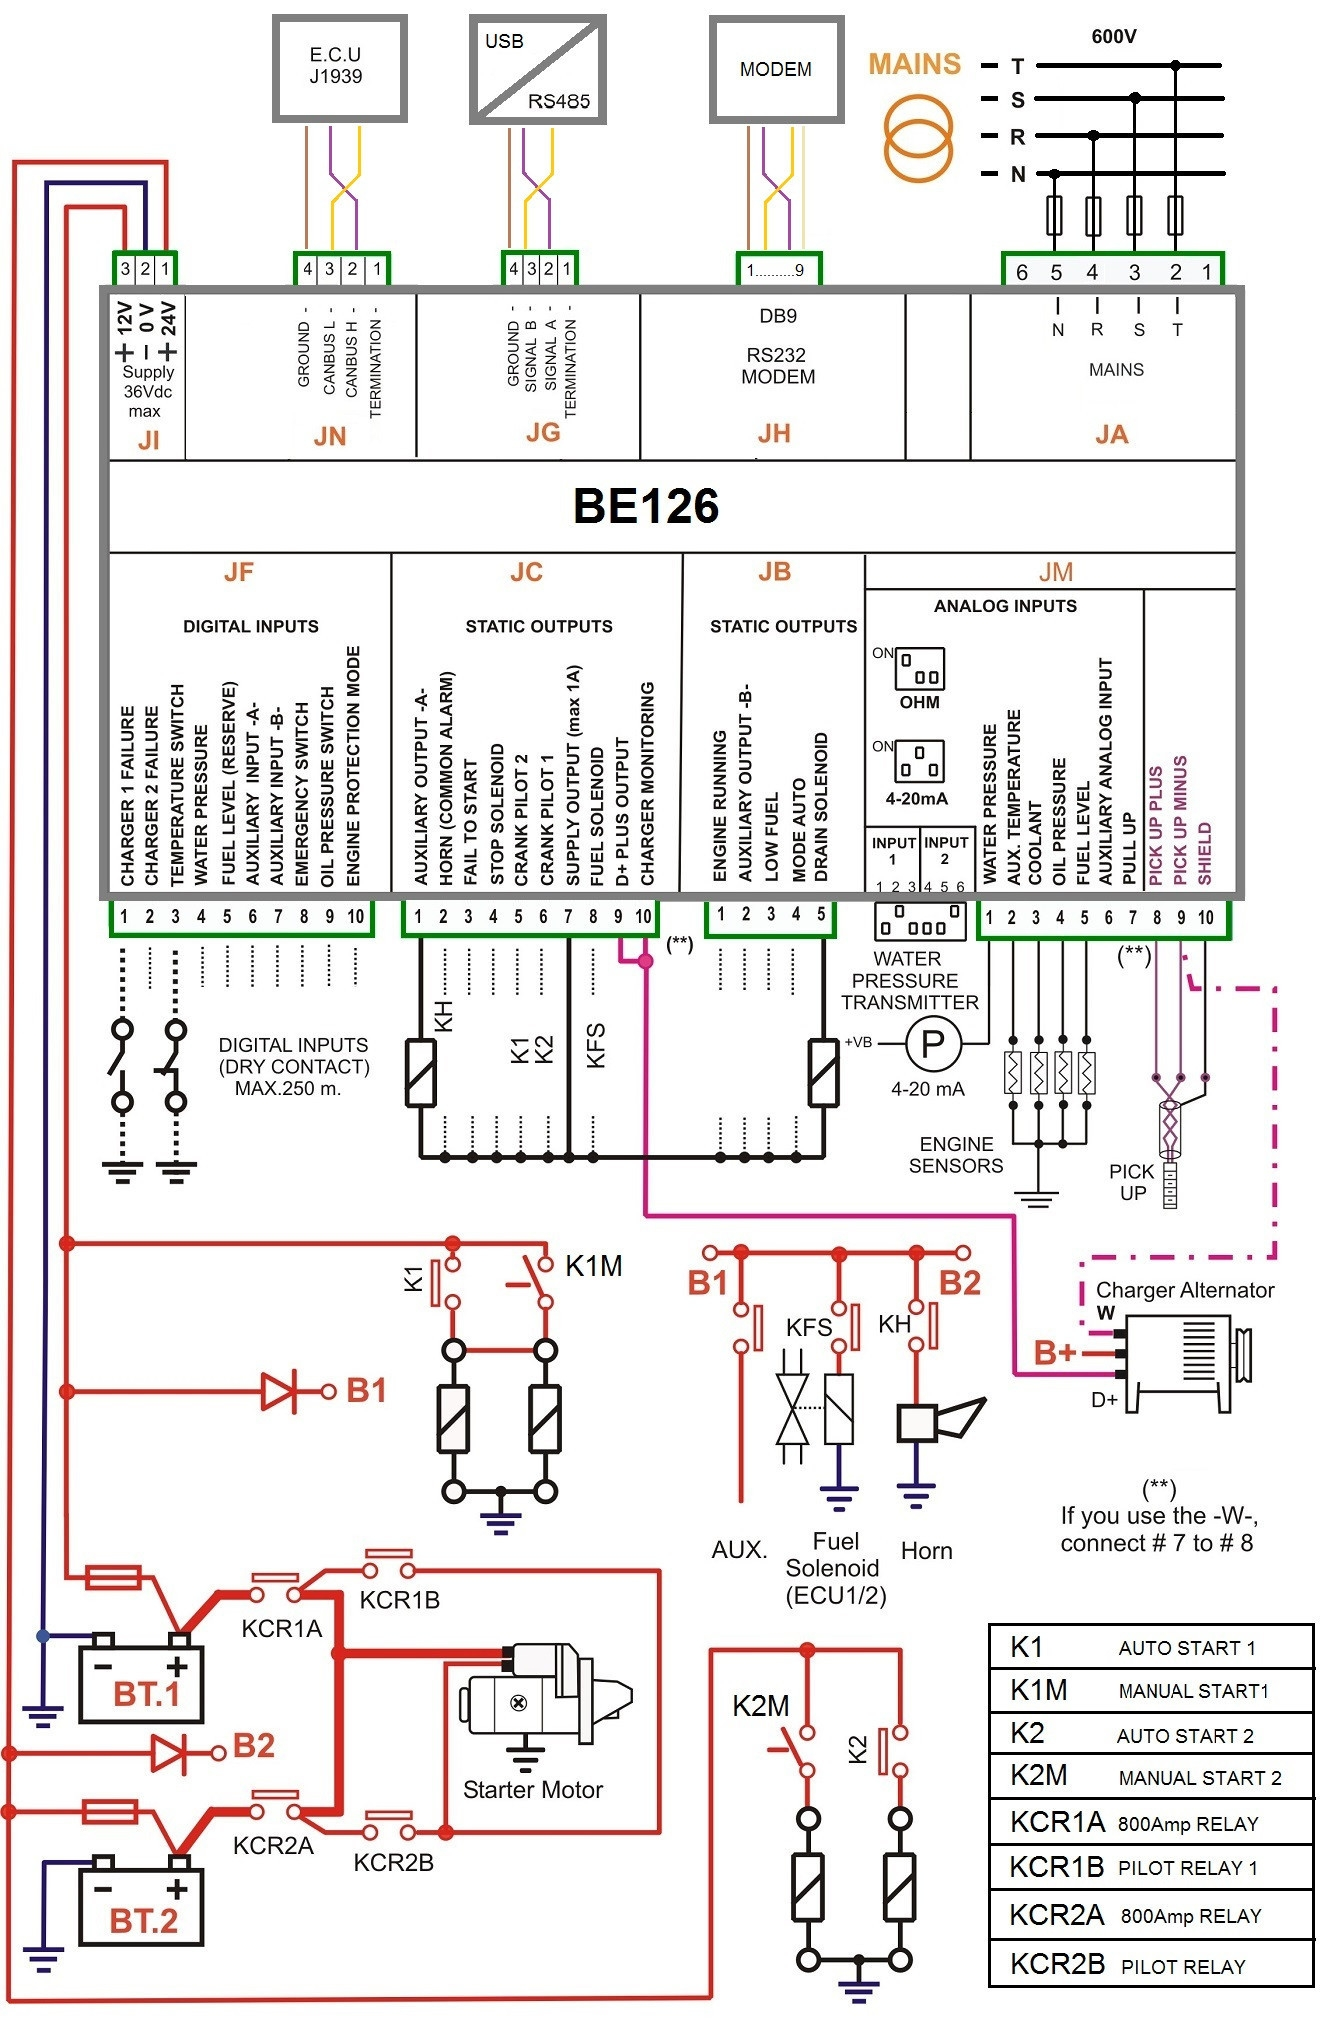 fire alarm control panel wiring diagram jeep wrangler stereo free for keypad new